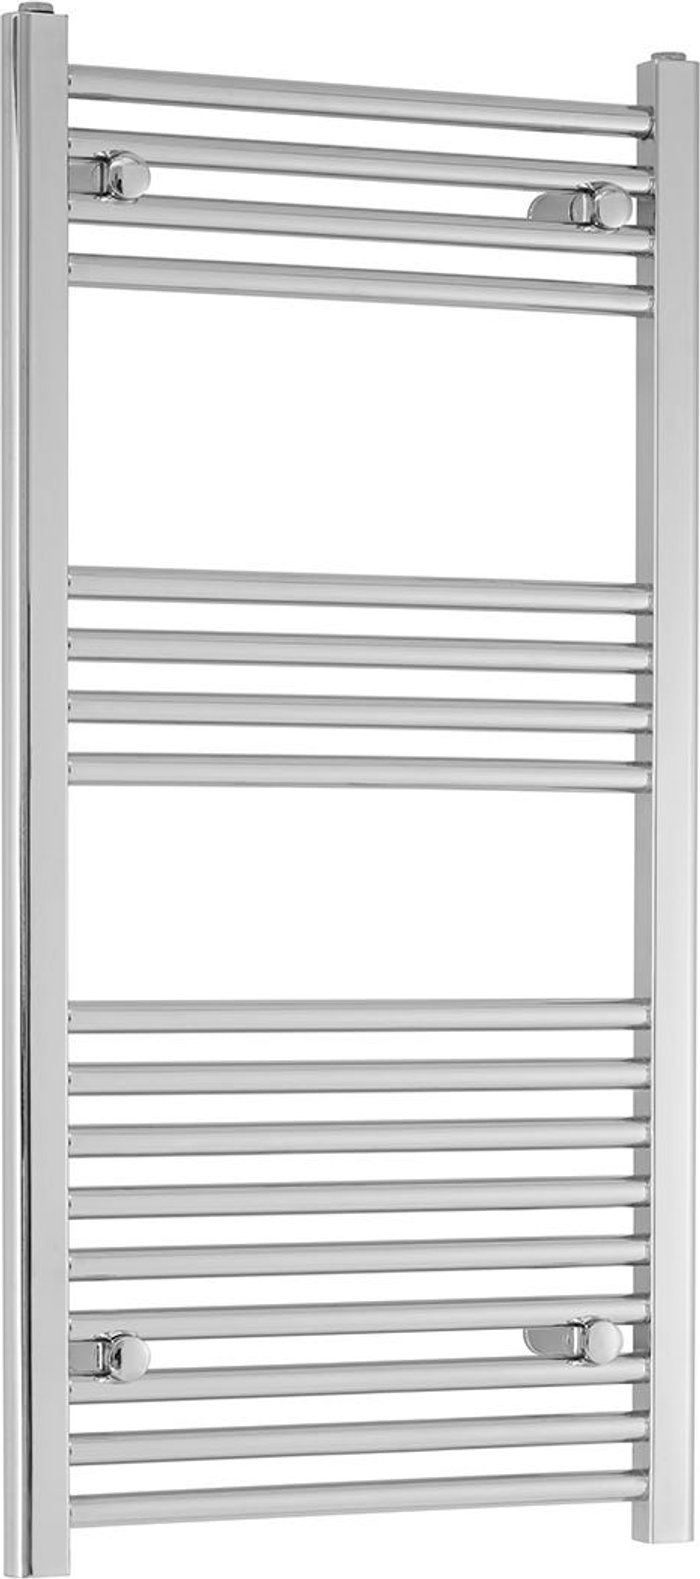 Towelrads Towelrads Heating Style Blythe Ladder Rail 1800x400mm Straight - Chrome